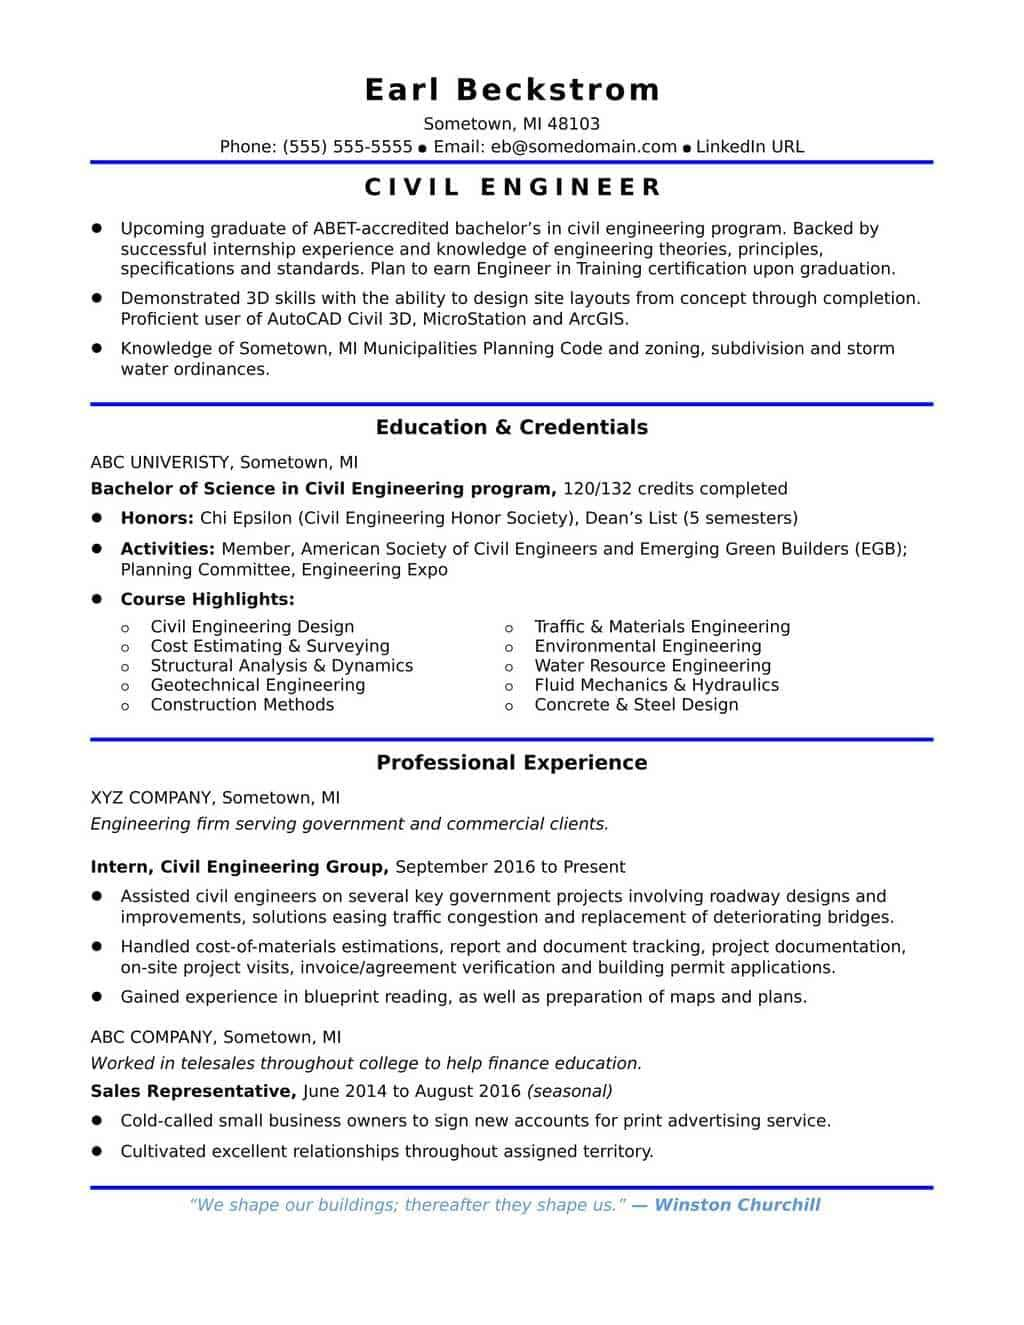 Resume Samples for Civil Engineer in the Philippines in